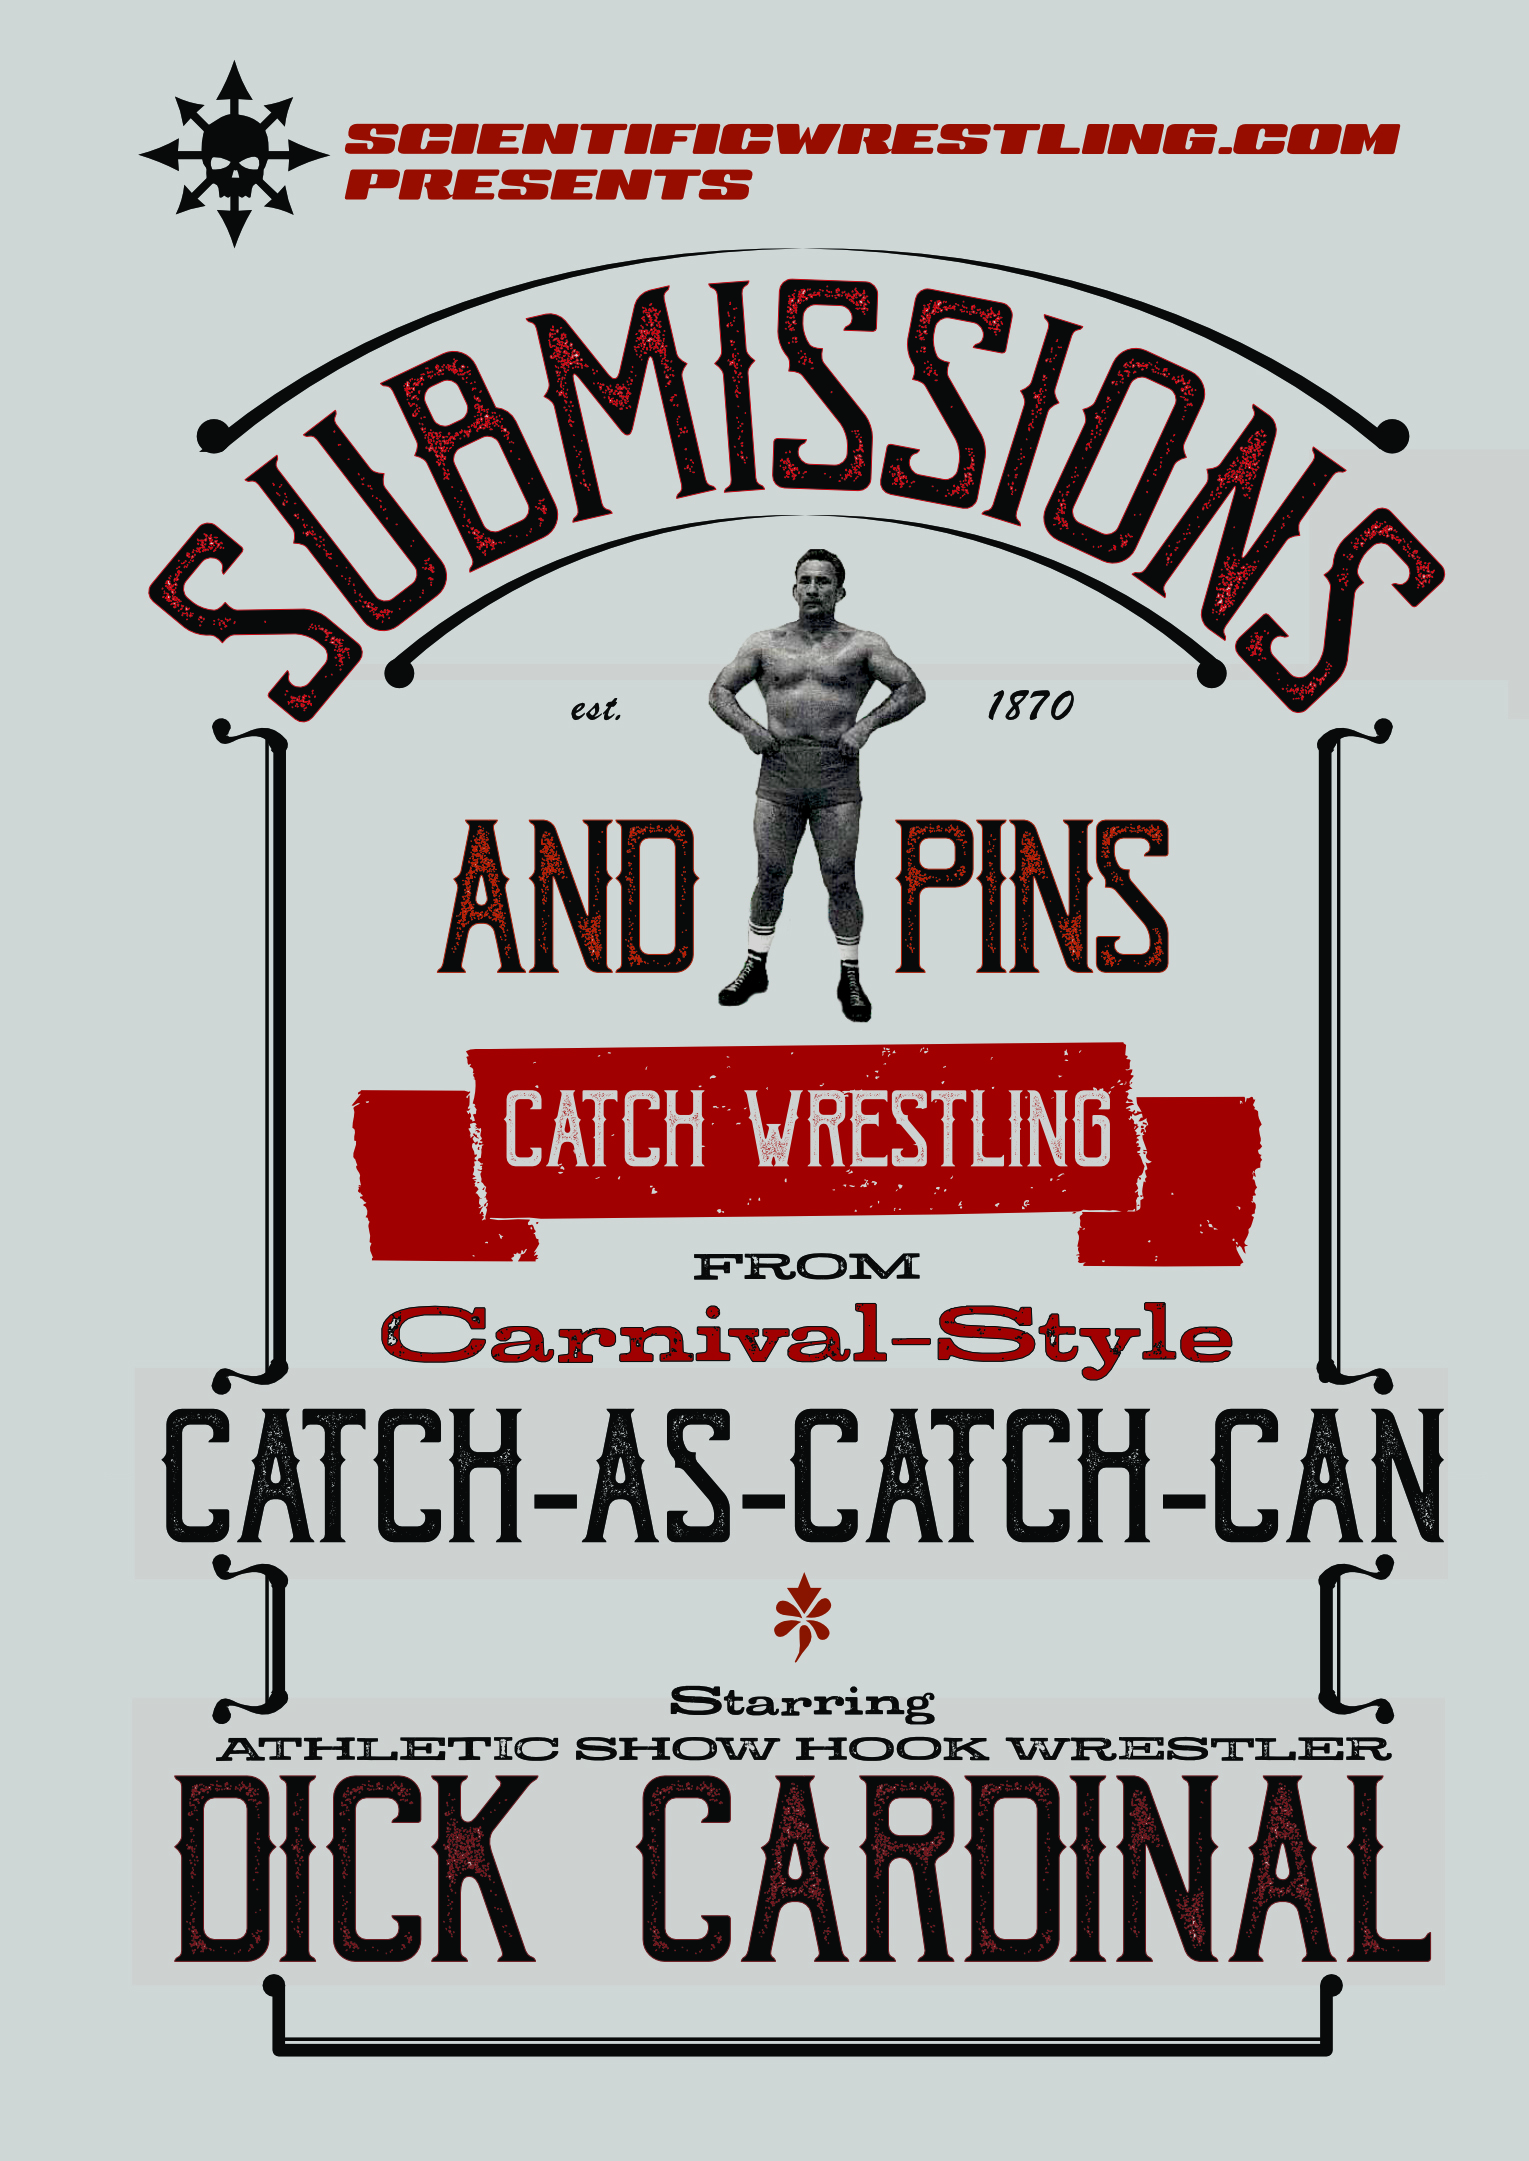 Submissions and Pins From Carnival-Style Catch Wrestling